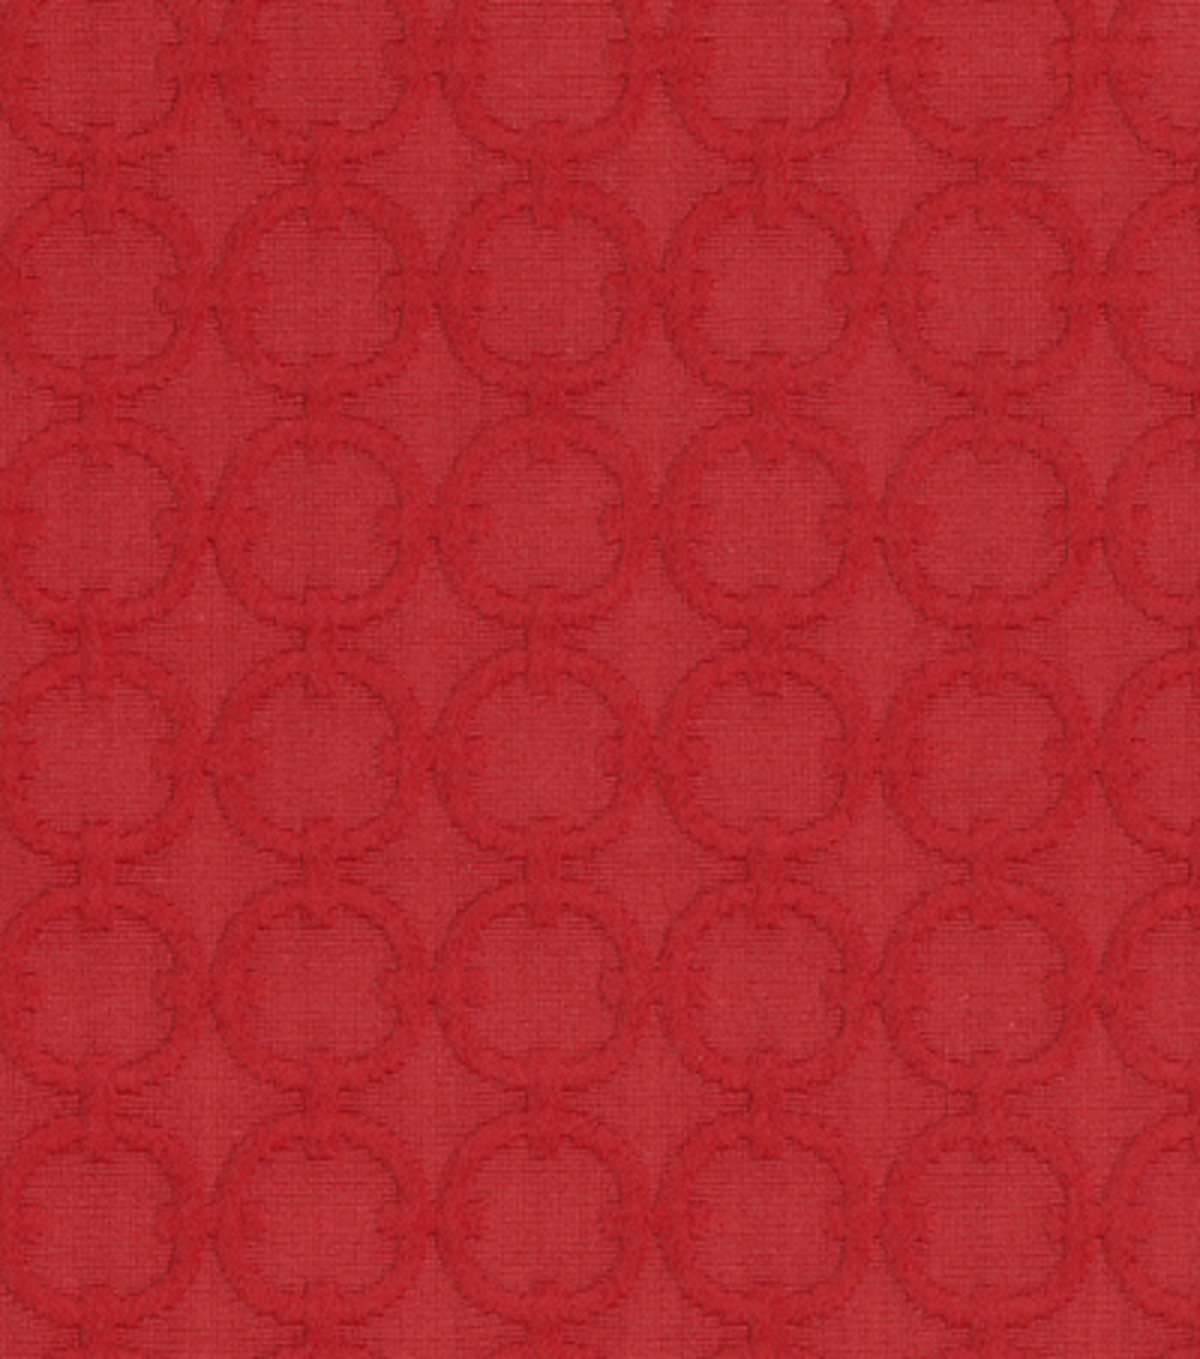 Home Decor 8\u0022x8\u0022 Fabric Swatch-Upholstery Fabric-Waverly Full Circle/Red Buoy